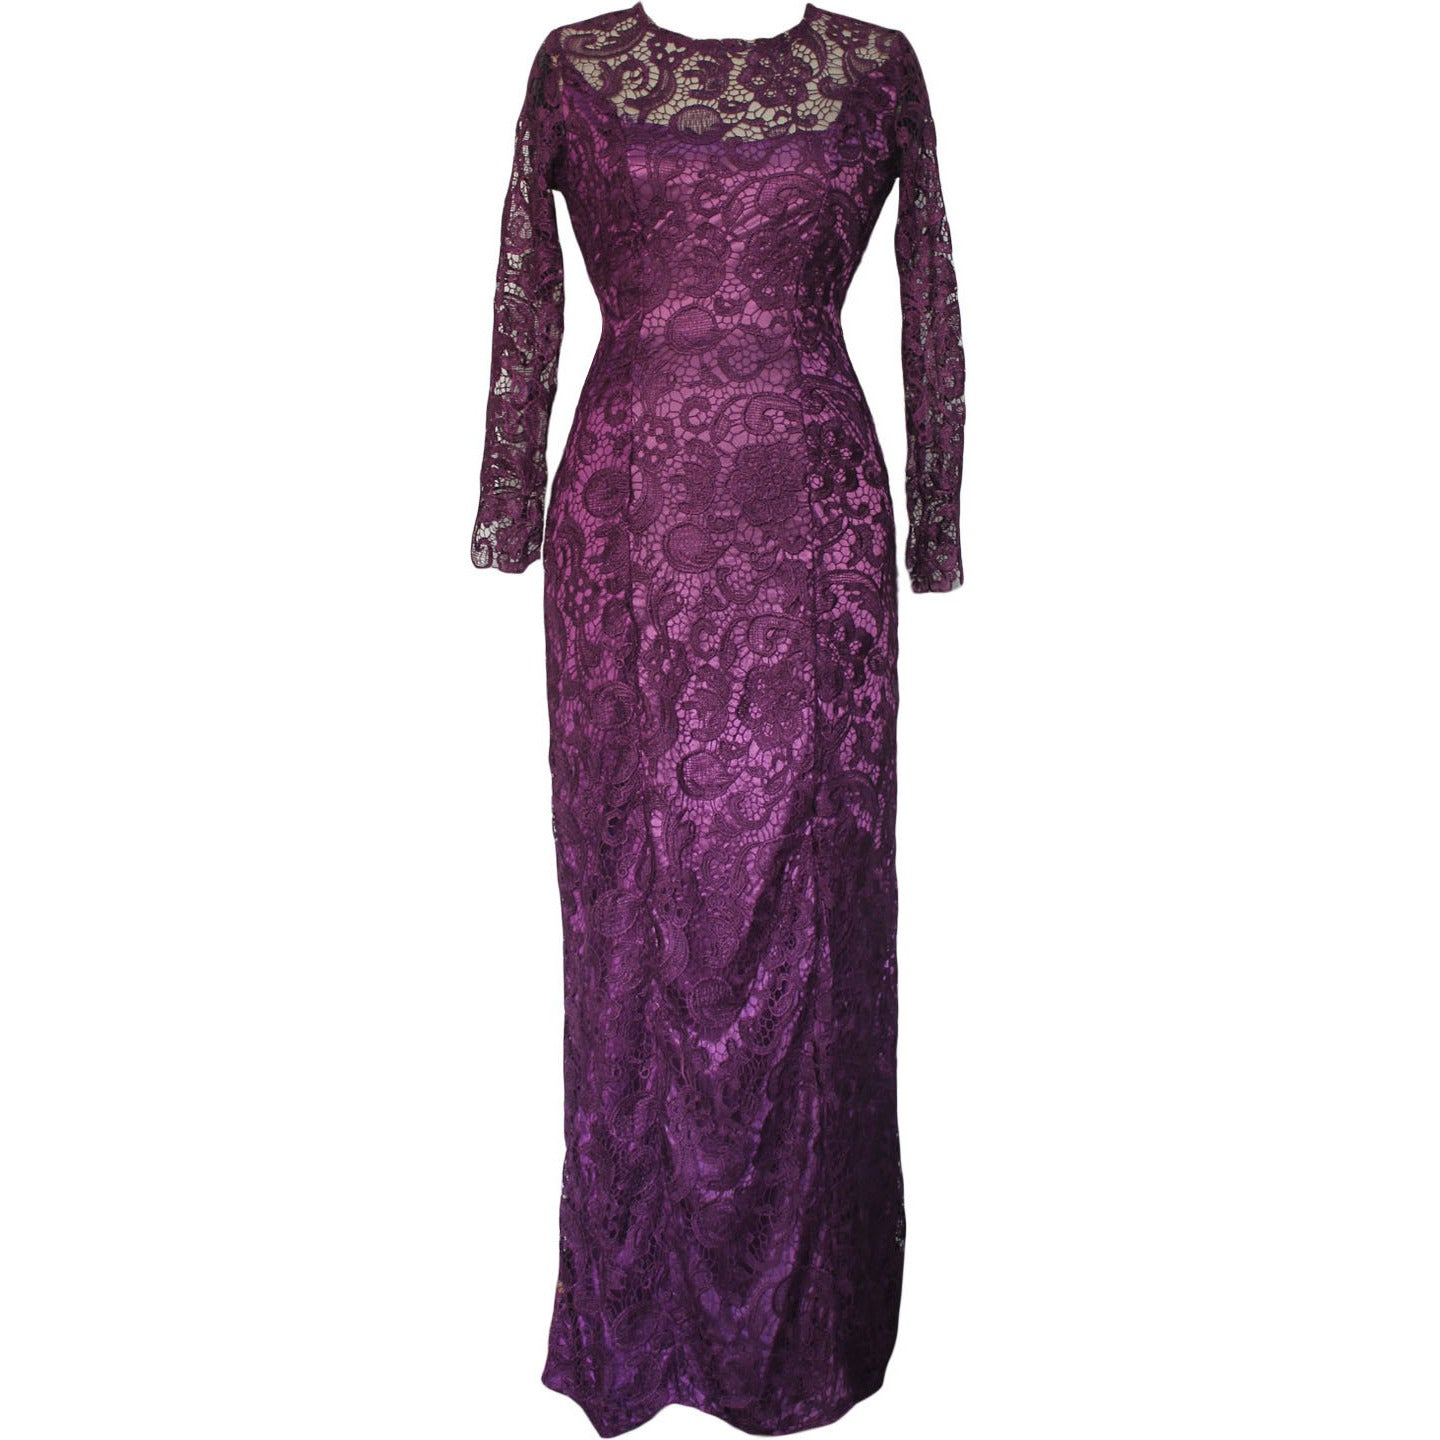 Lace Overlay Purple Maxi Dress LAVELIQ - LAVELIQ - 2